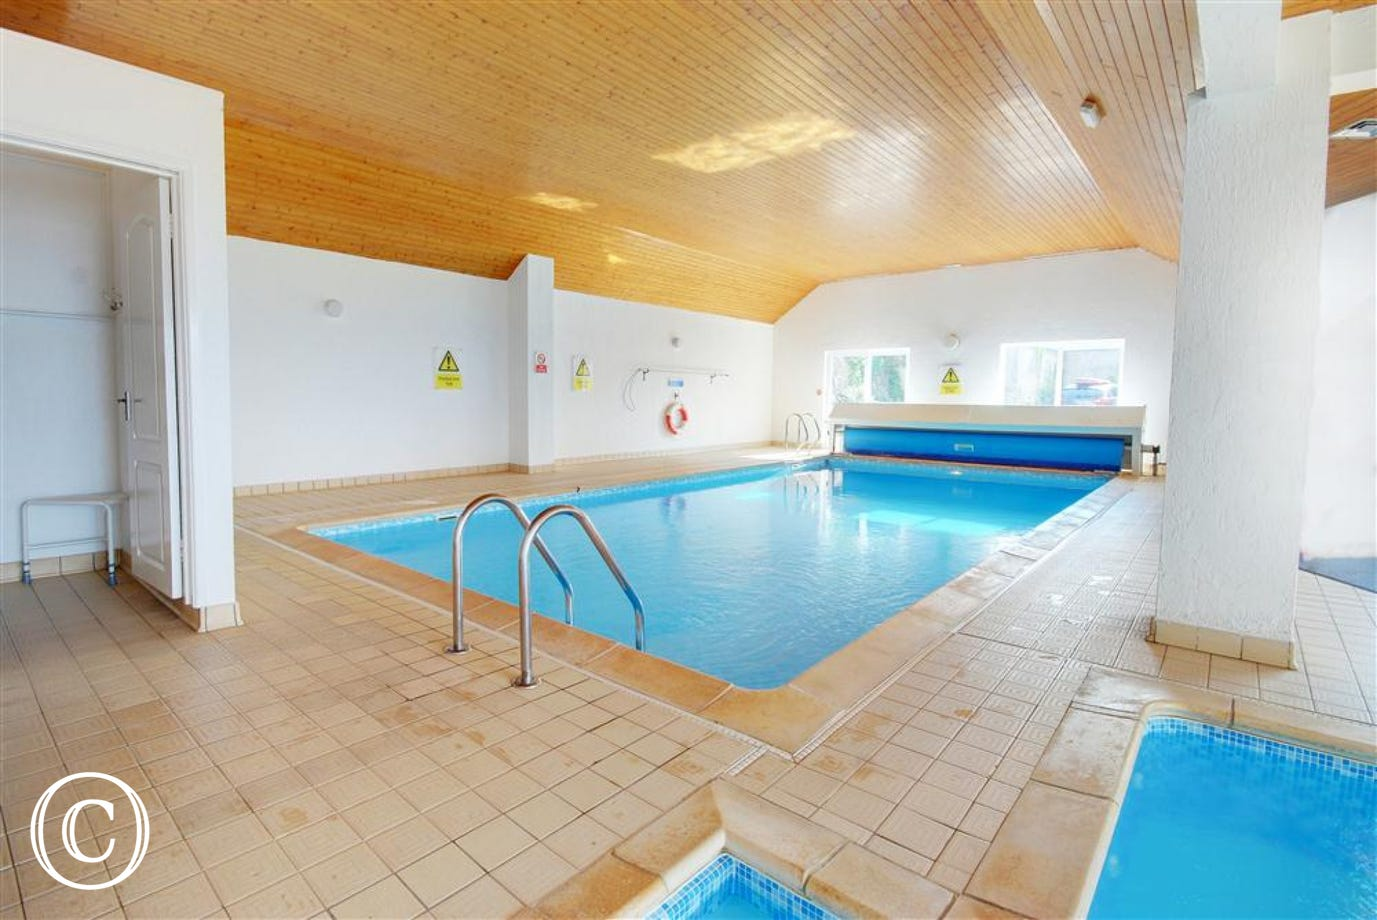 The apartment benefits from the heated indoor swimming pool with separate smaller pool for children.